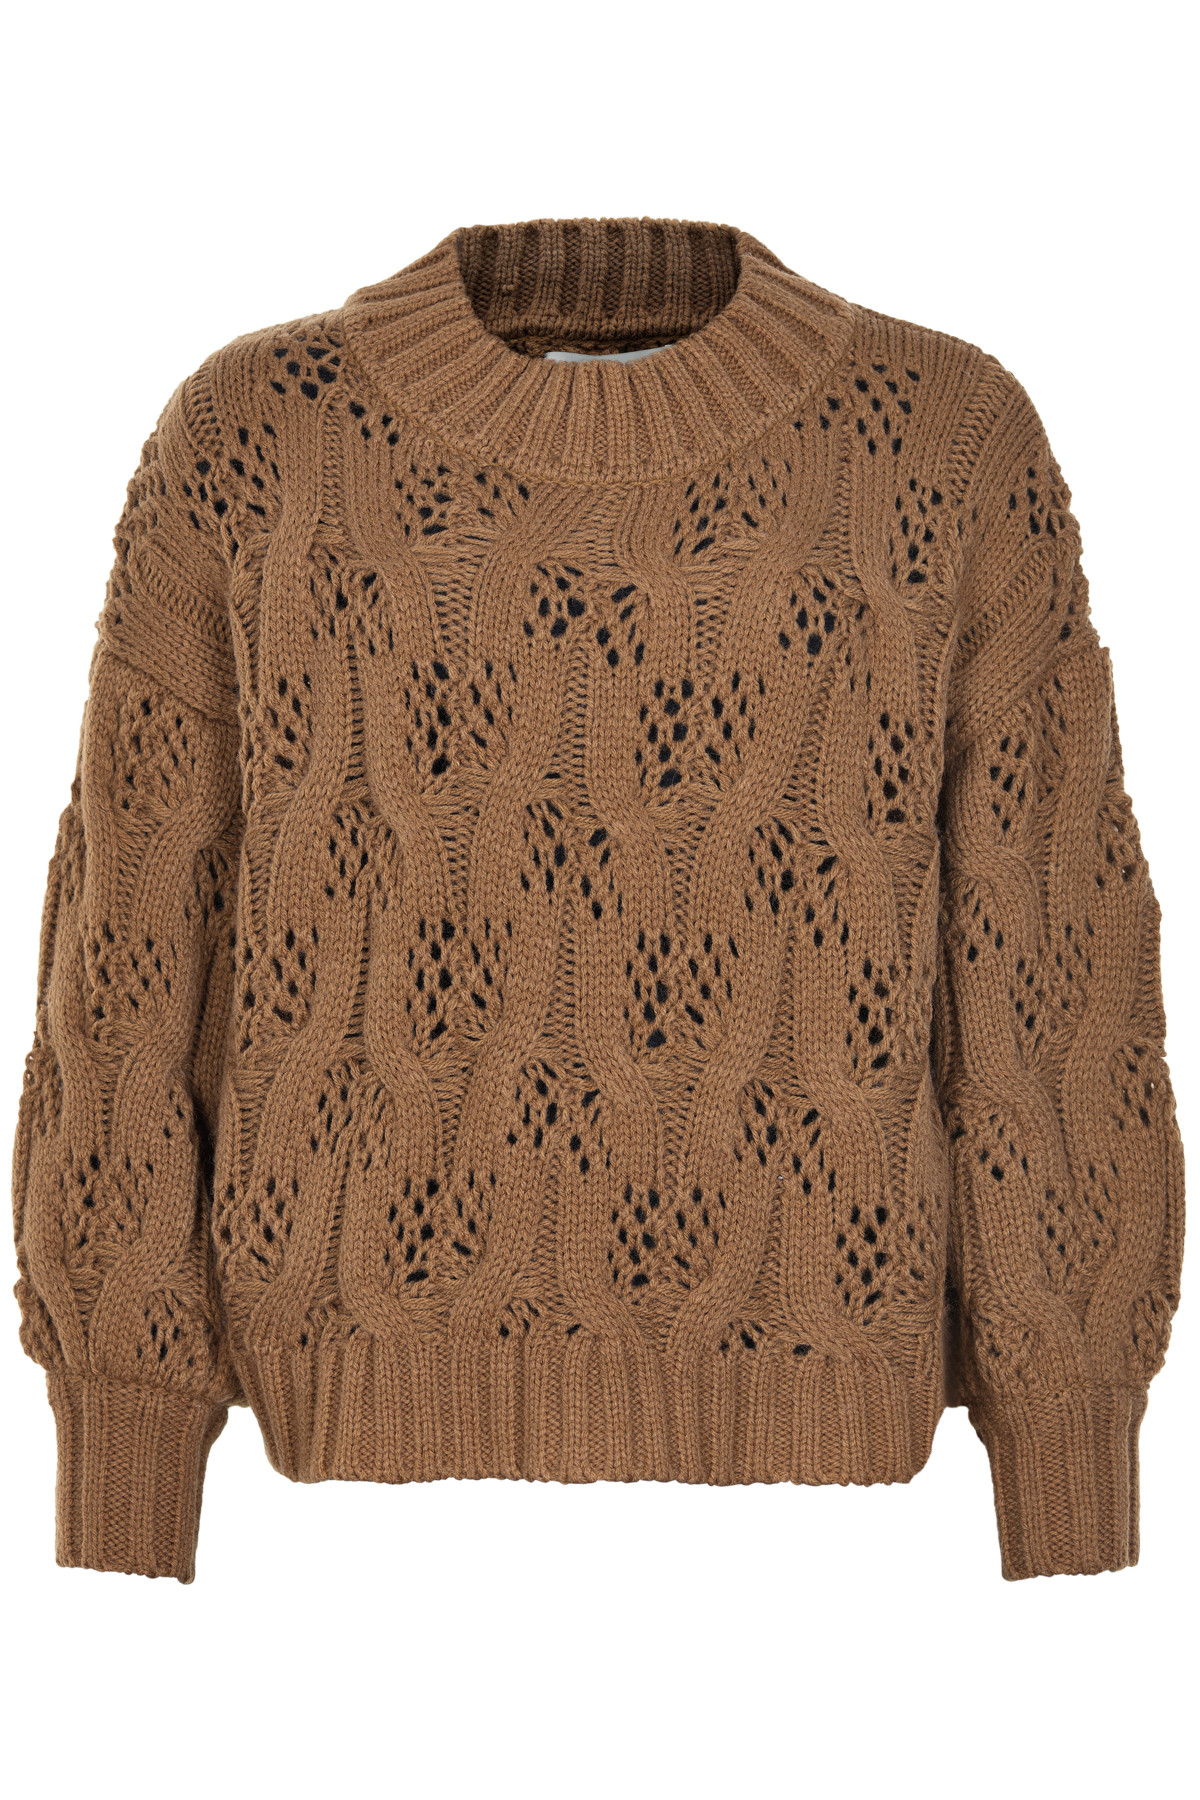 Image of   AND LESS ALHANIE PULLOVER 5519206 (Toasted Coconut, L)